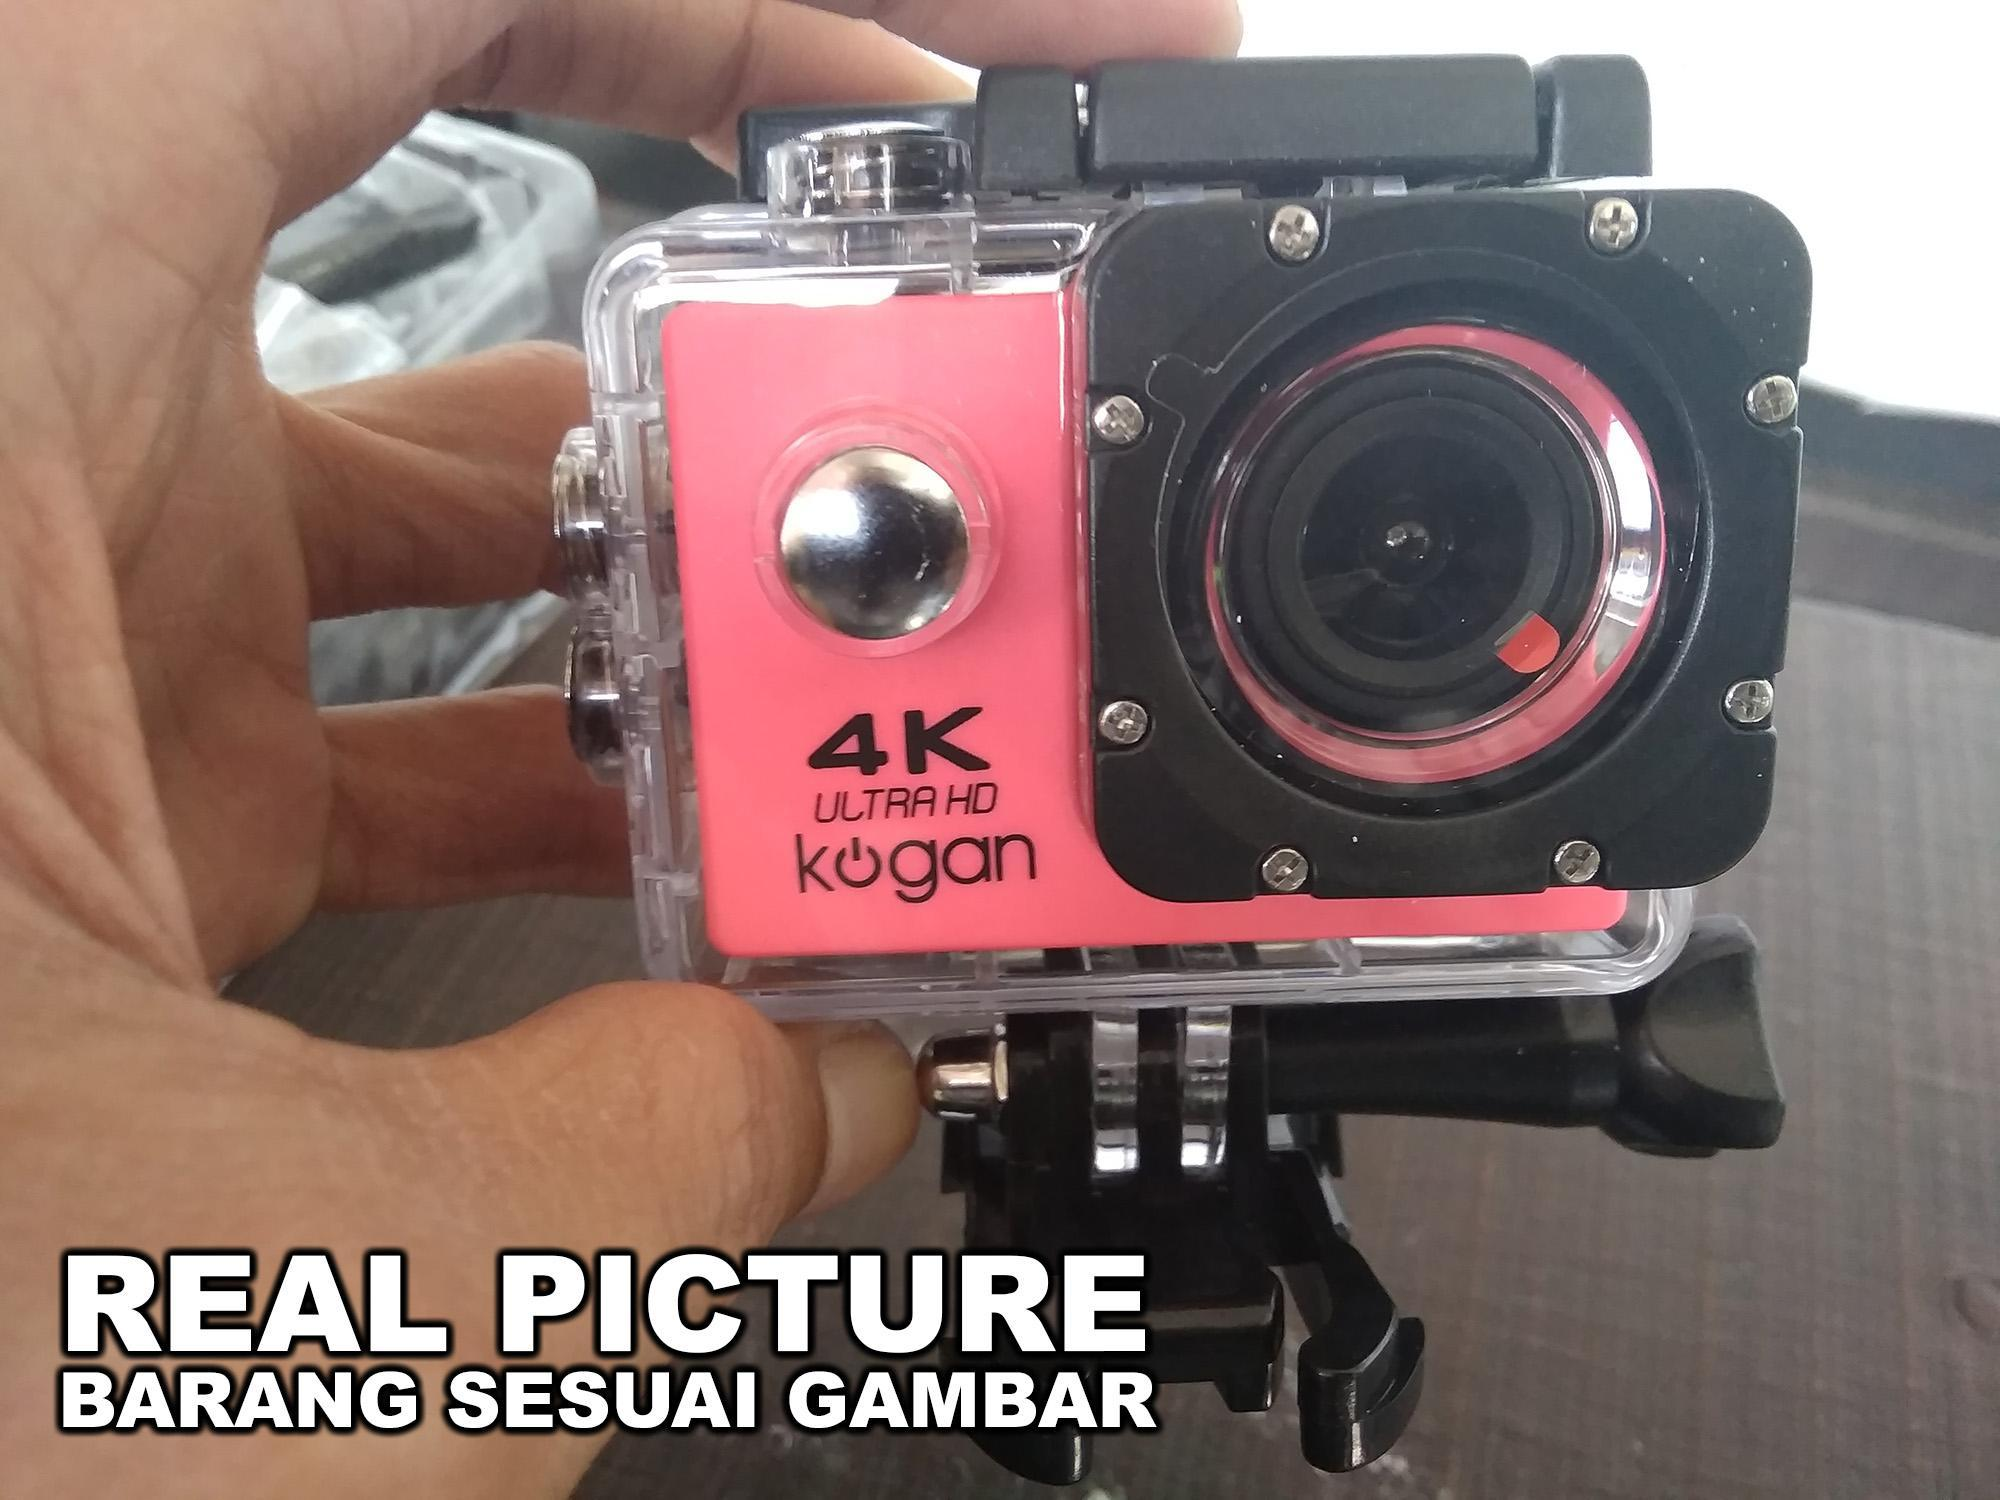 Big King Shop - Action Cam Sport Cam 4K Ultra HD 16MP Waterproof High Quality - Kogan - Gopro - XIaomi Yi KAMERA AKSI KAMERA CEMBUNG JAGONYA NGEVLOG